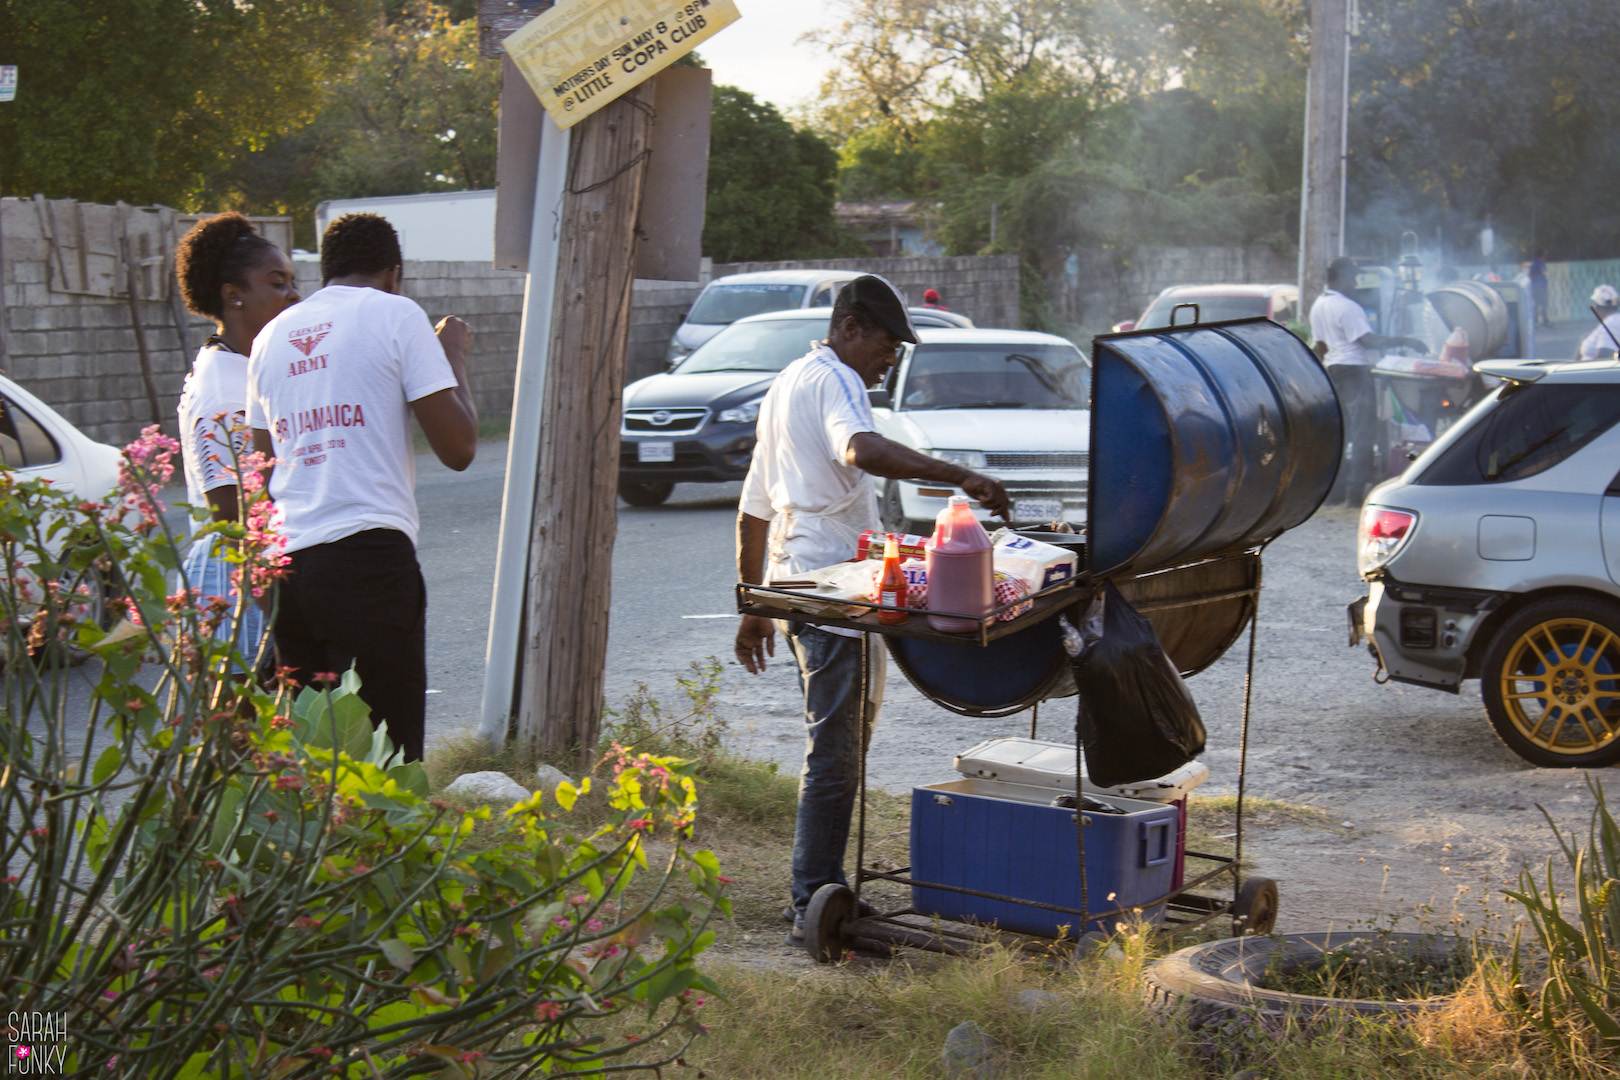 Jamaican's cooking outside of a party